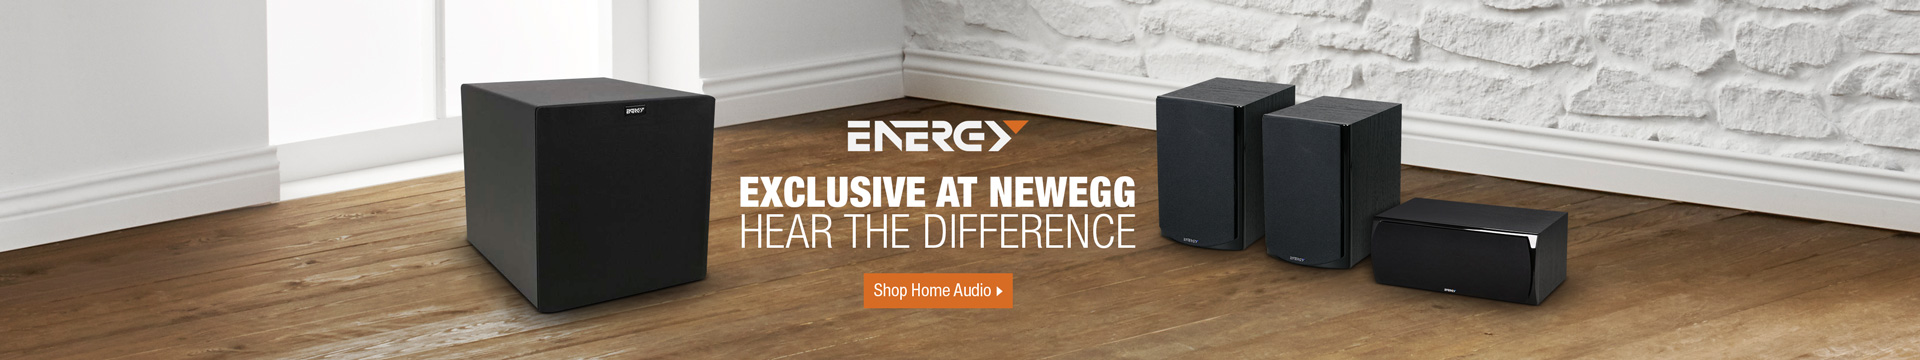 Exclusive at Newegg